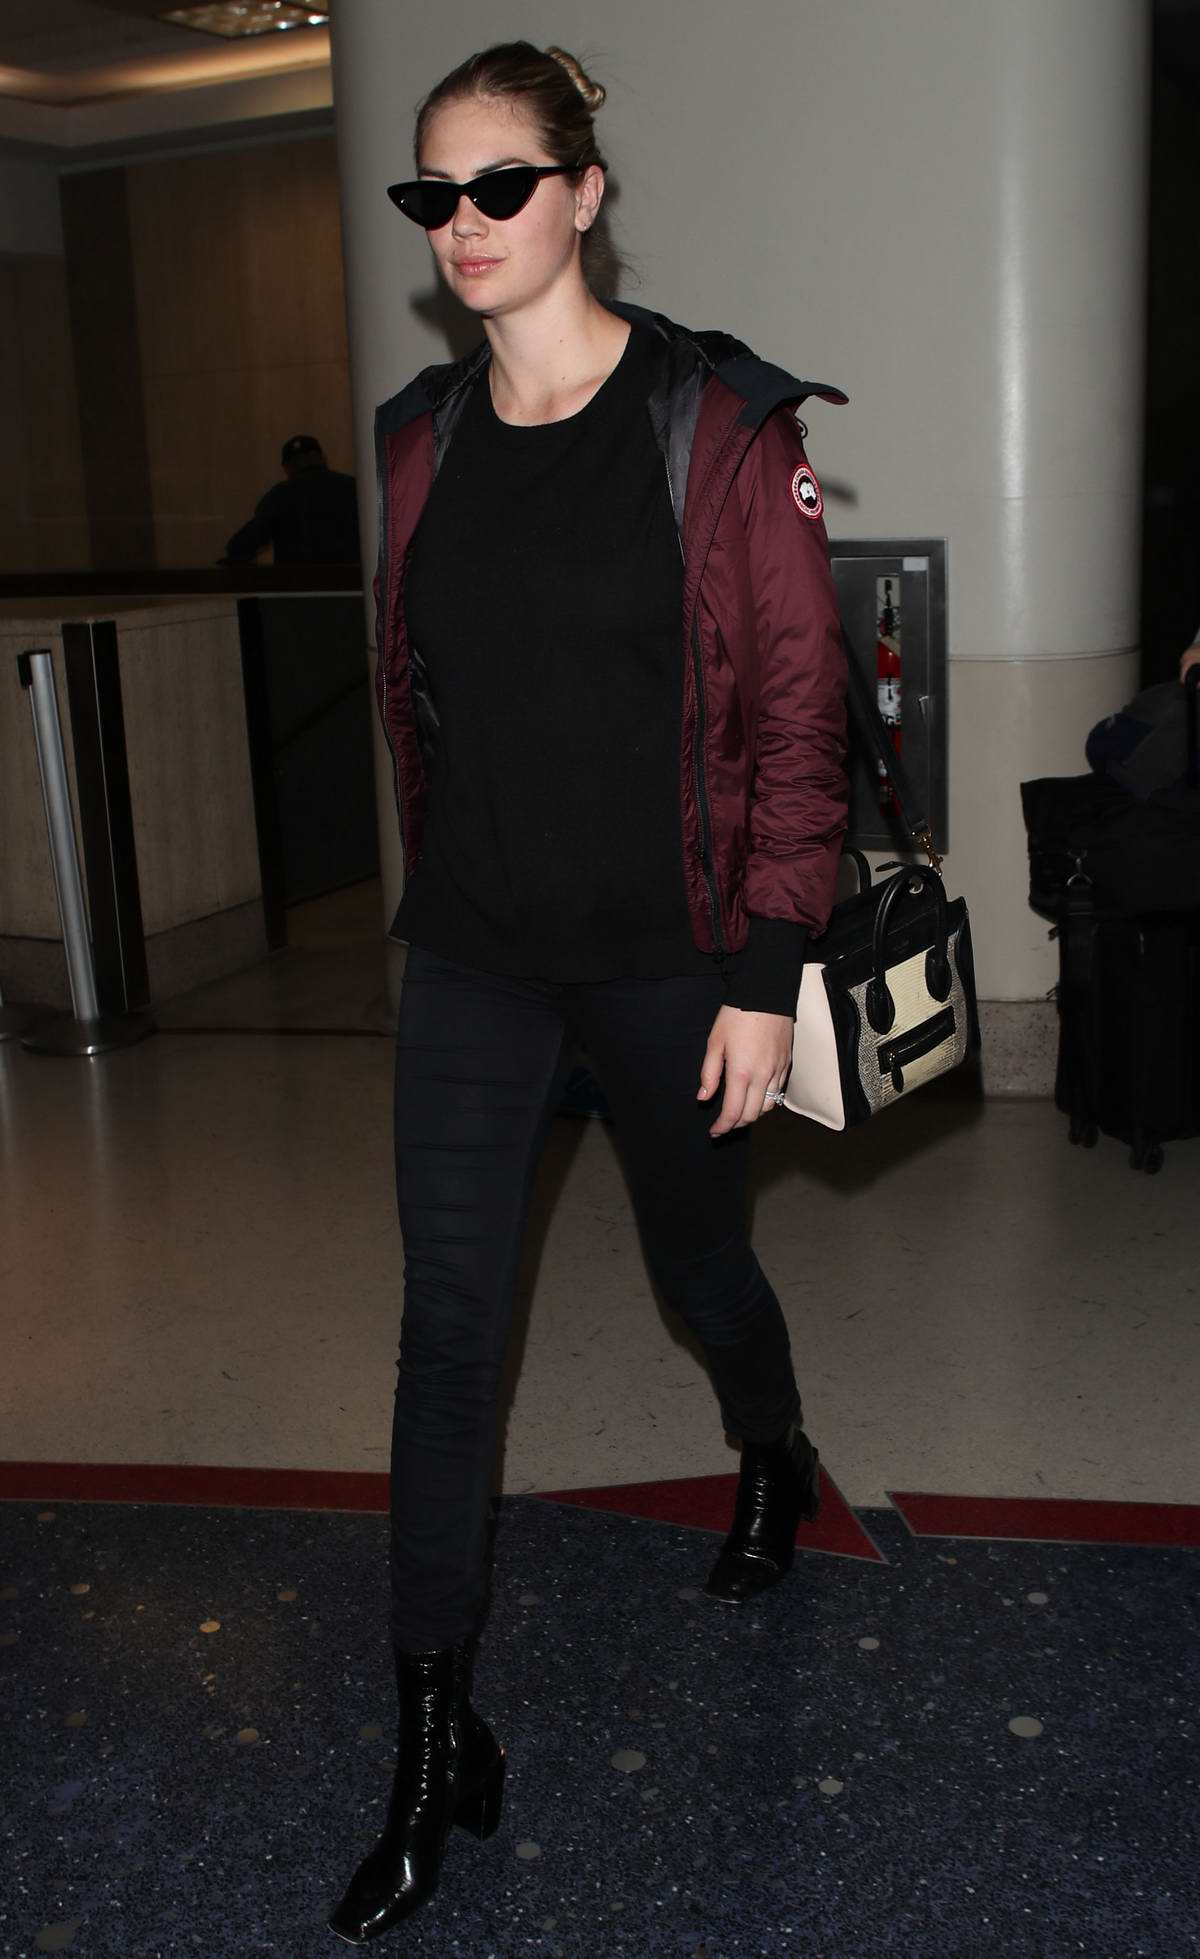 Kate Upton arrives at LAX airport, Los Angeles